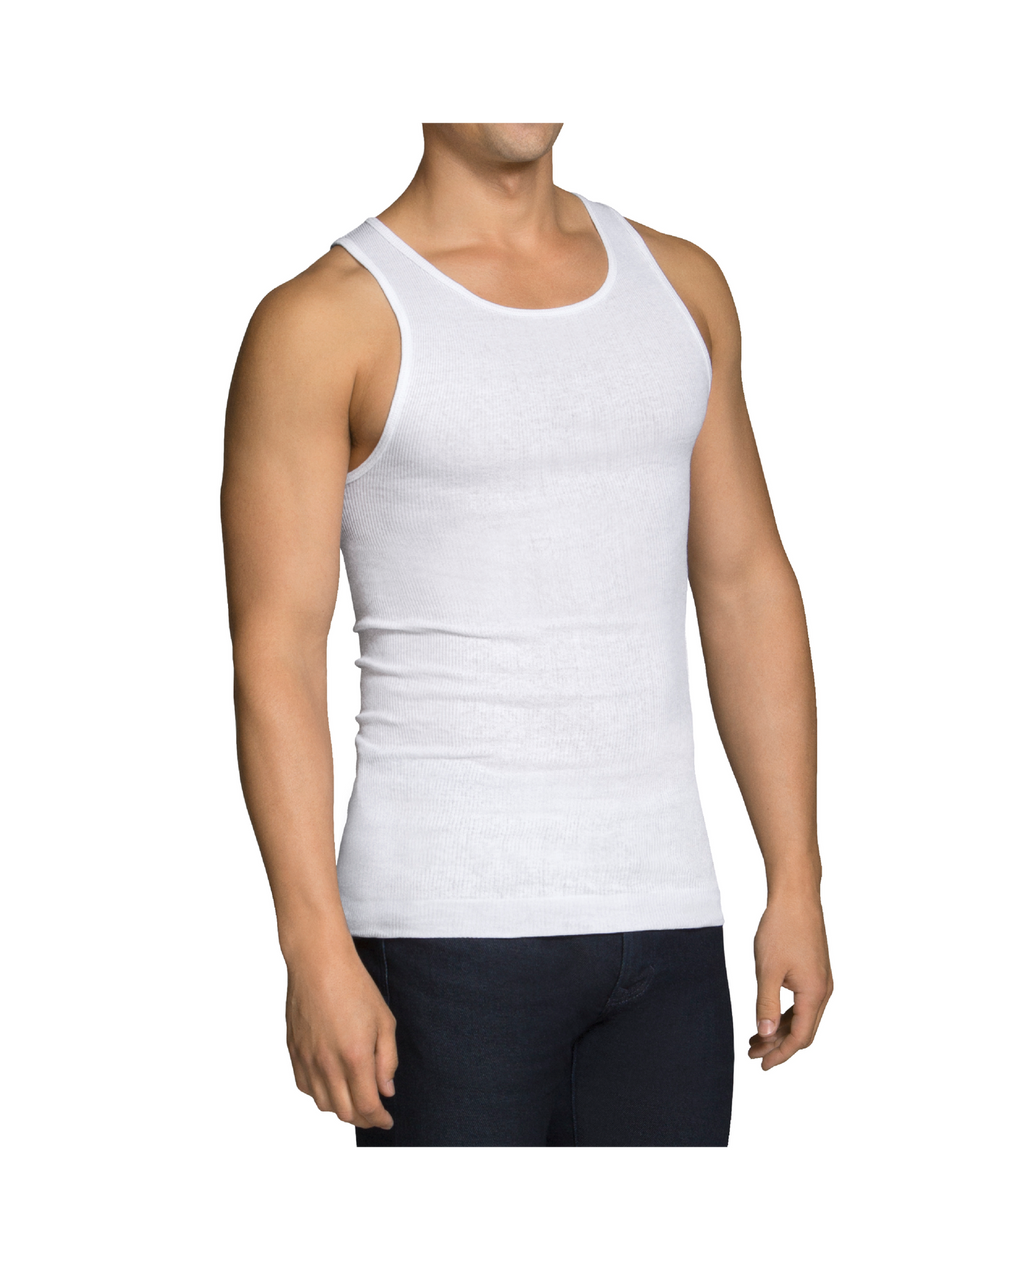 Men's A-shirt White (6 Pack)